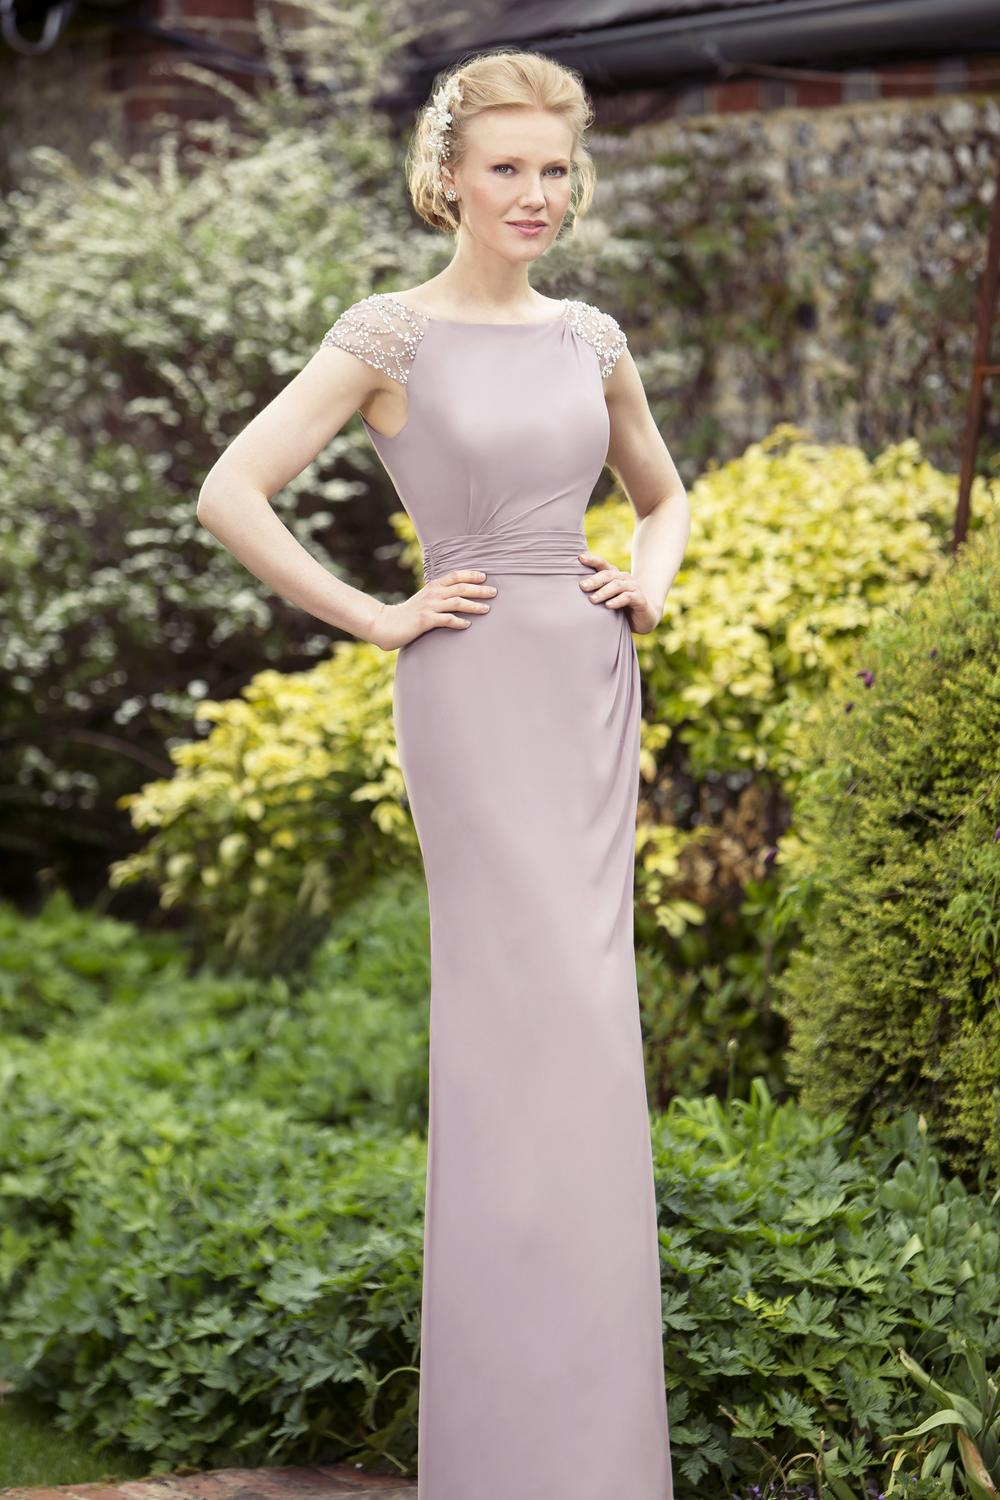 Dublin bridesmaid dresses image collections braidsmaid dress dessy bridesmaid dresses dublin images braidsmaid dress dublin bridesmaid dresses gallery braidsmaid dress cocktail 30 gorgeous ombrellifo Choice Image